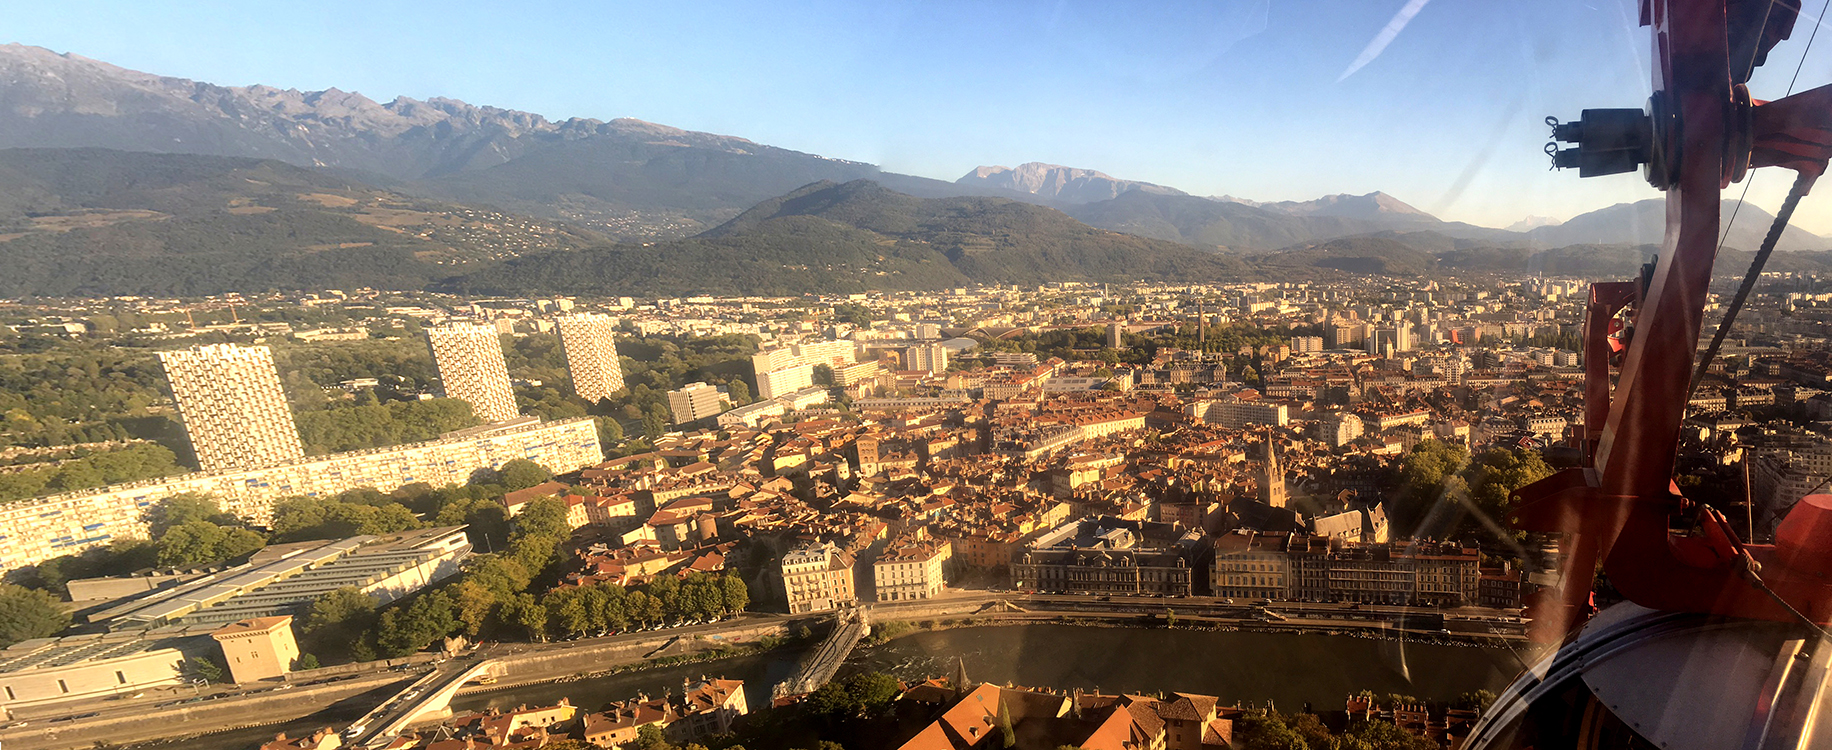 Wide angle shot of the city of Grenoble from a cable car.